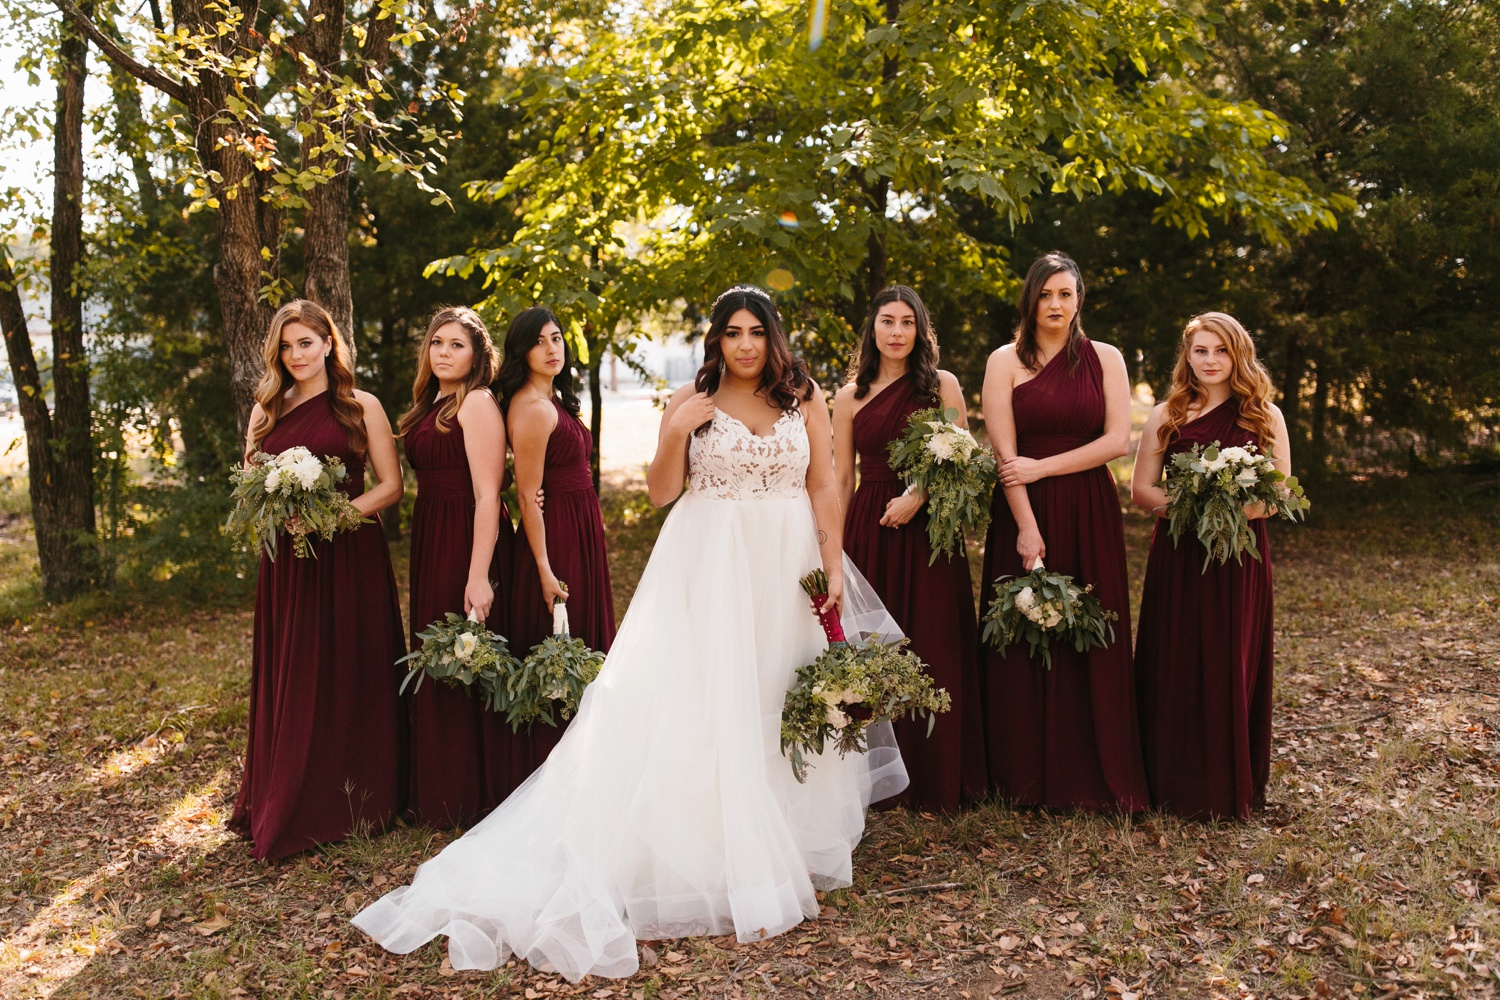 Grant + Lysette | a vibrant, deep burgundy and navy, and mixed metals wedding at Hidden Pines Chapel by North Texas Wedding Photographer Rachel Meagan Photography 042